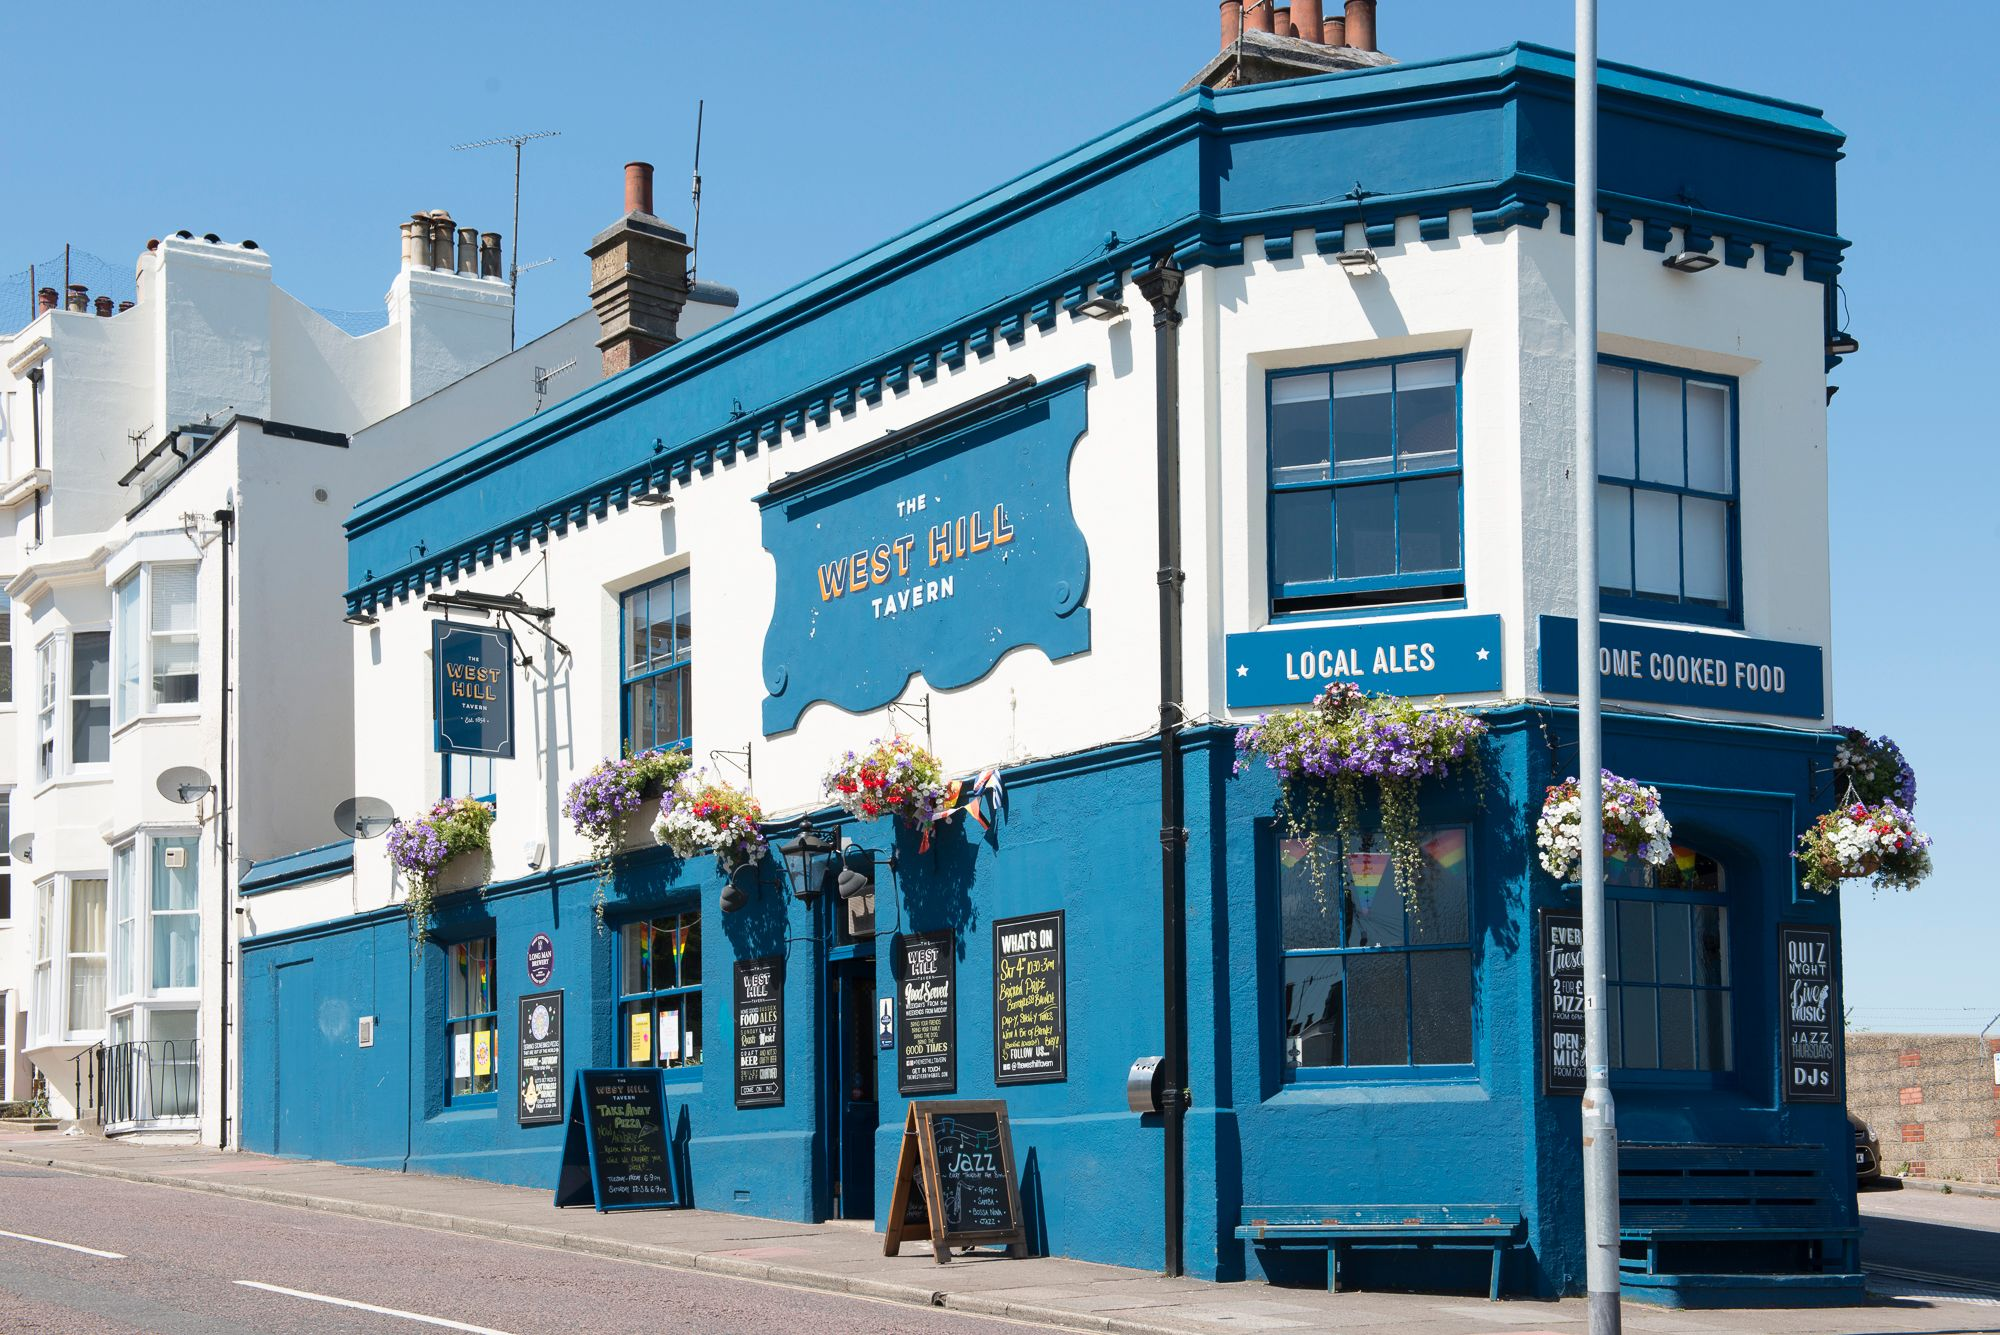 pub exterior. blue and white colored walls, flowers added as decoration